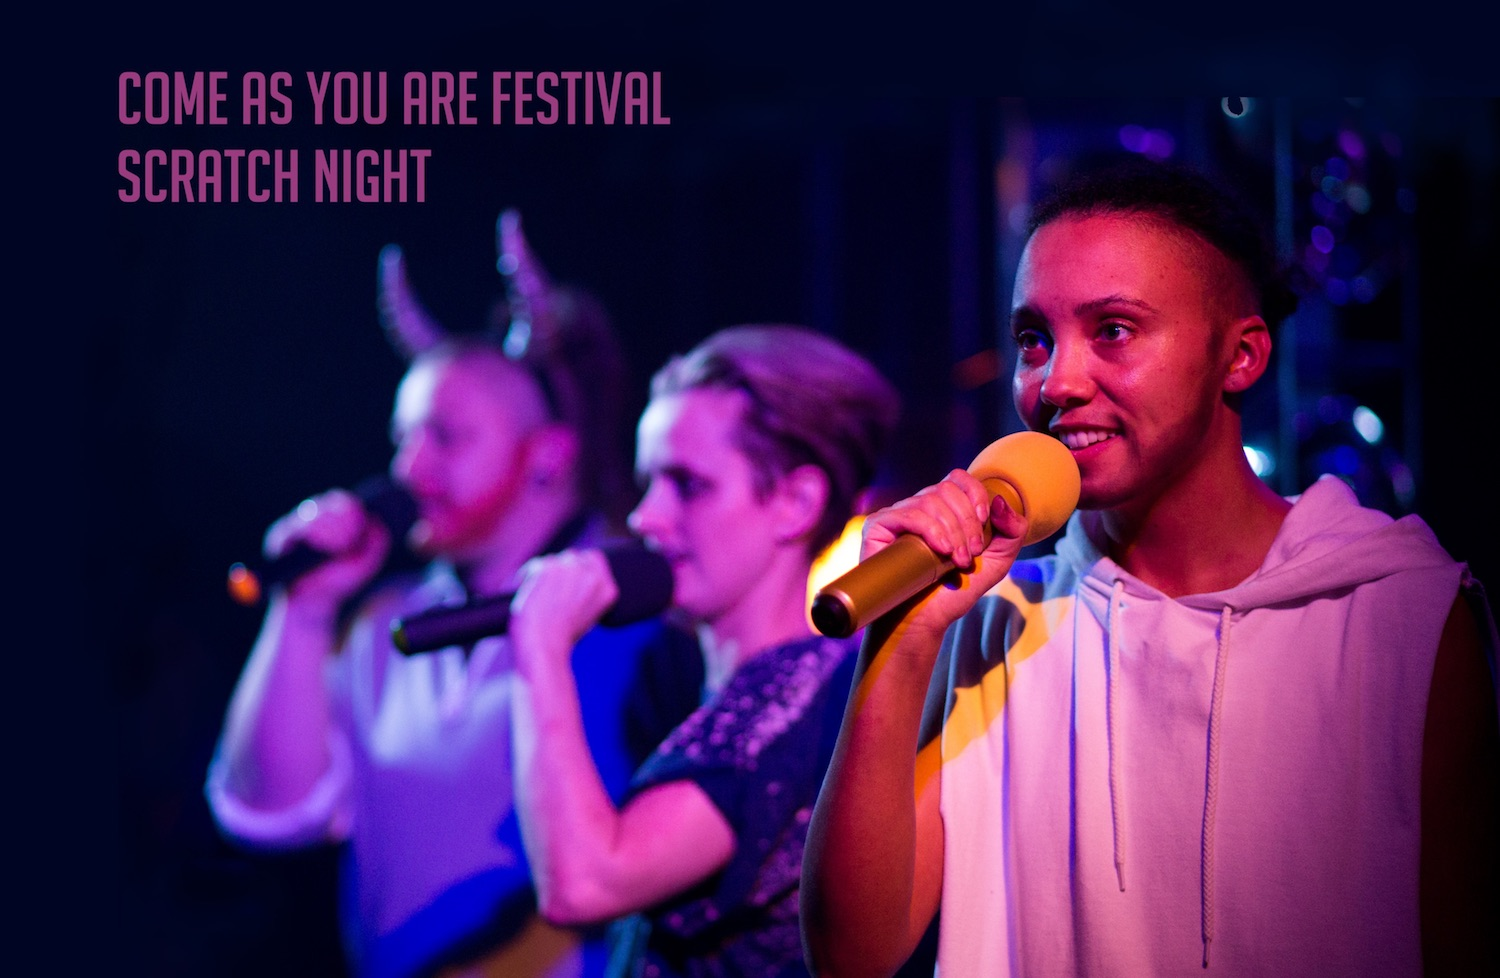 Call for submissions - Come As You Are Festival